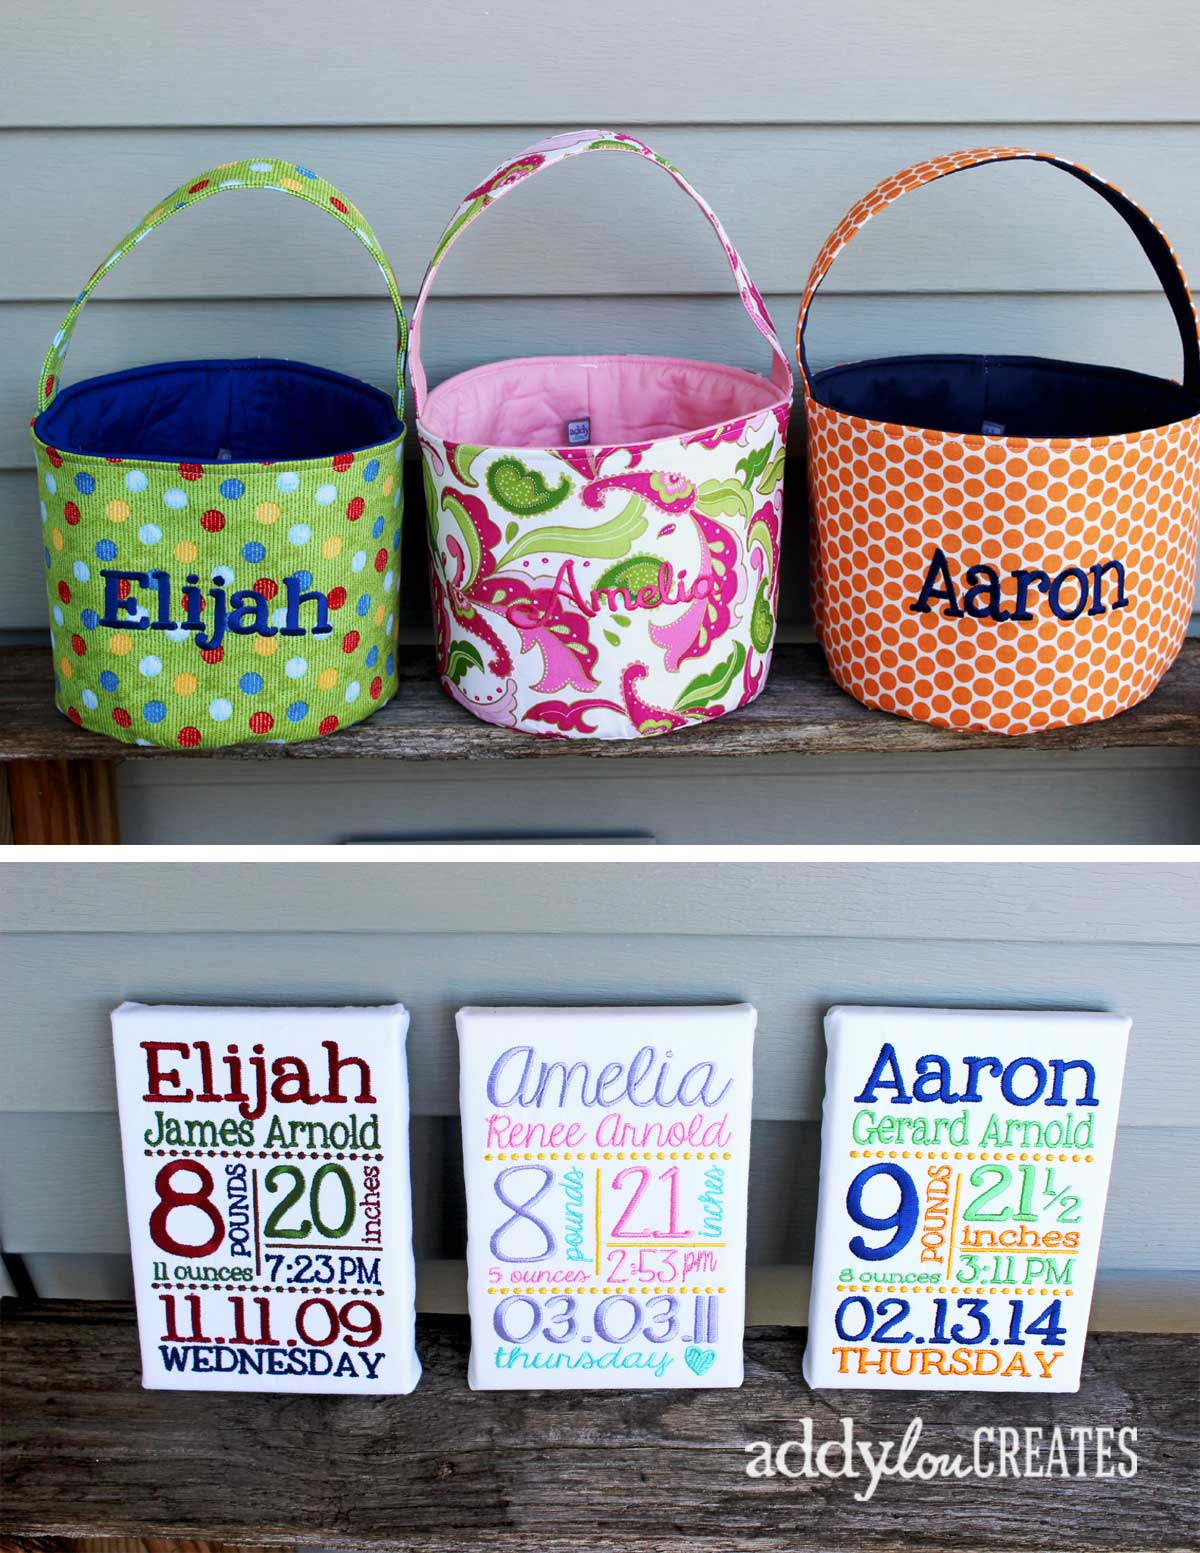 Easter-Gifts---AddyLou-Creates